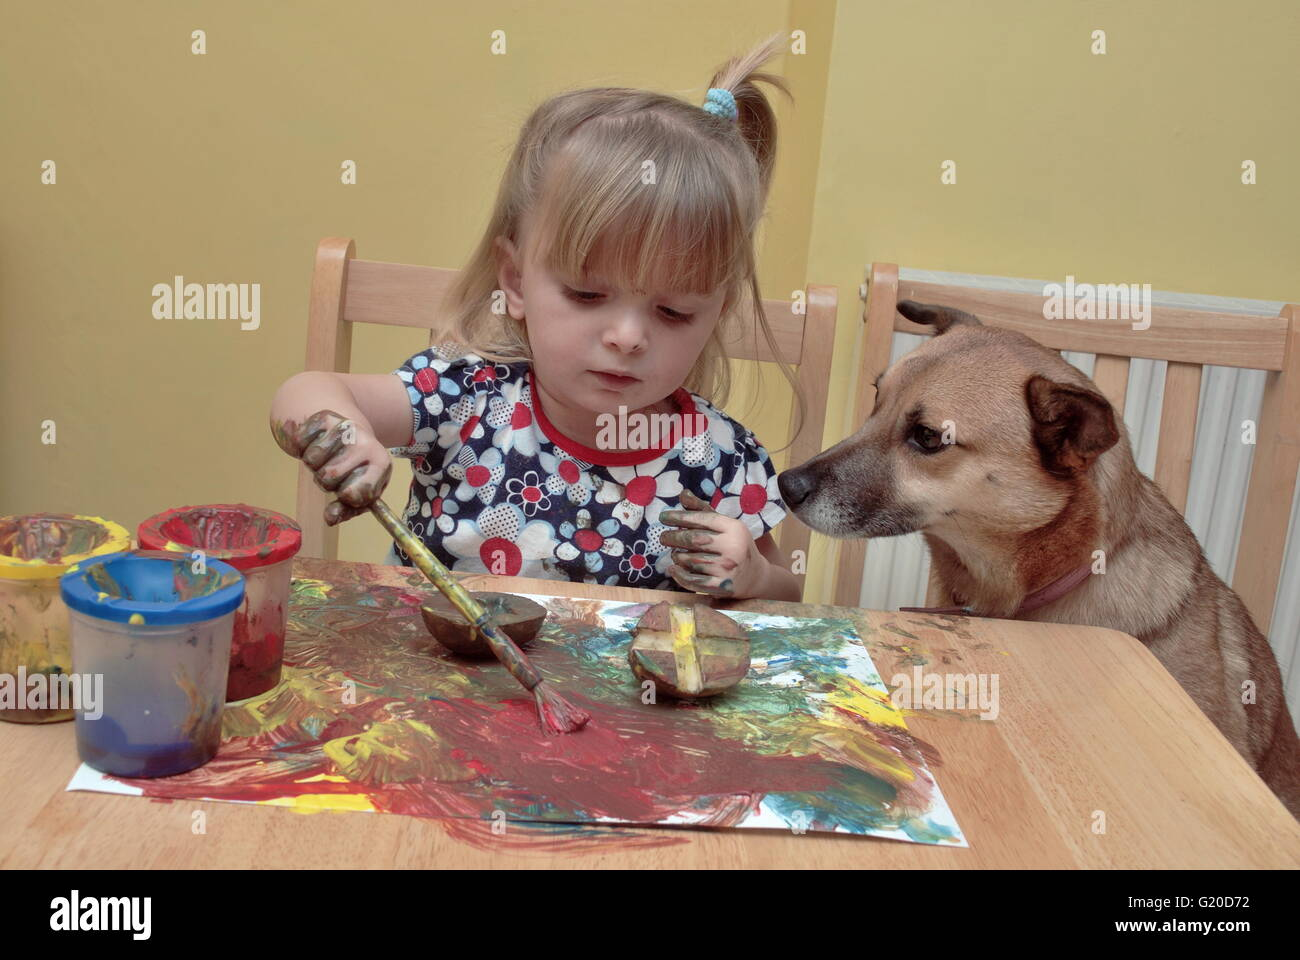 A young child painting at table in her home with the family dog watching her, looking curious. - Stock Image